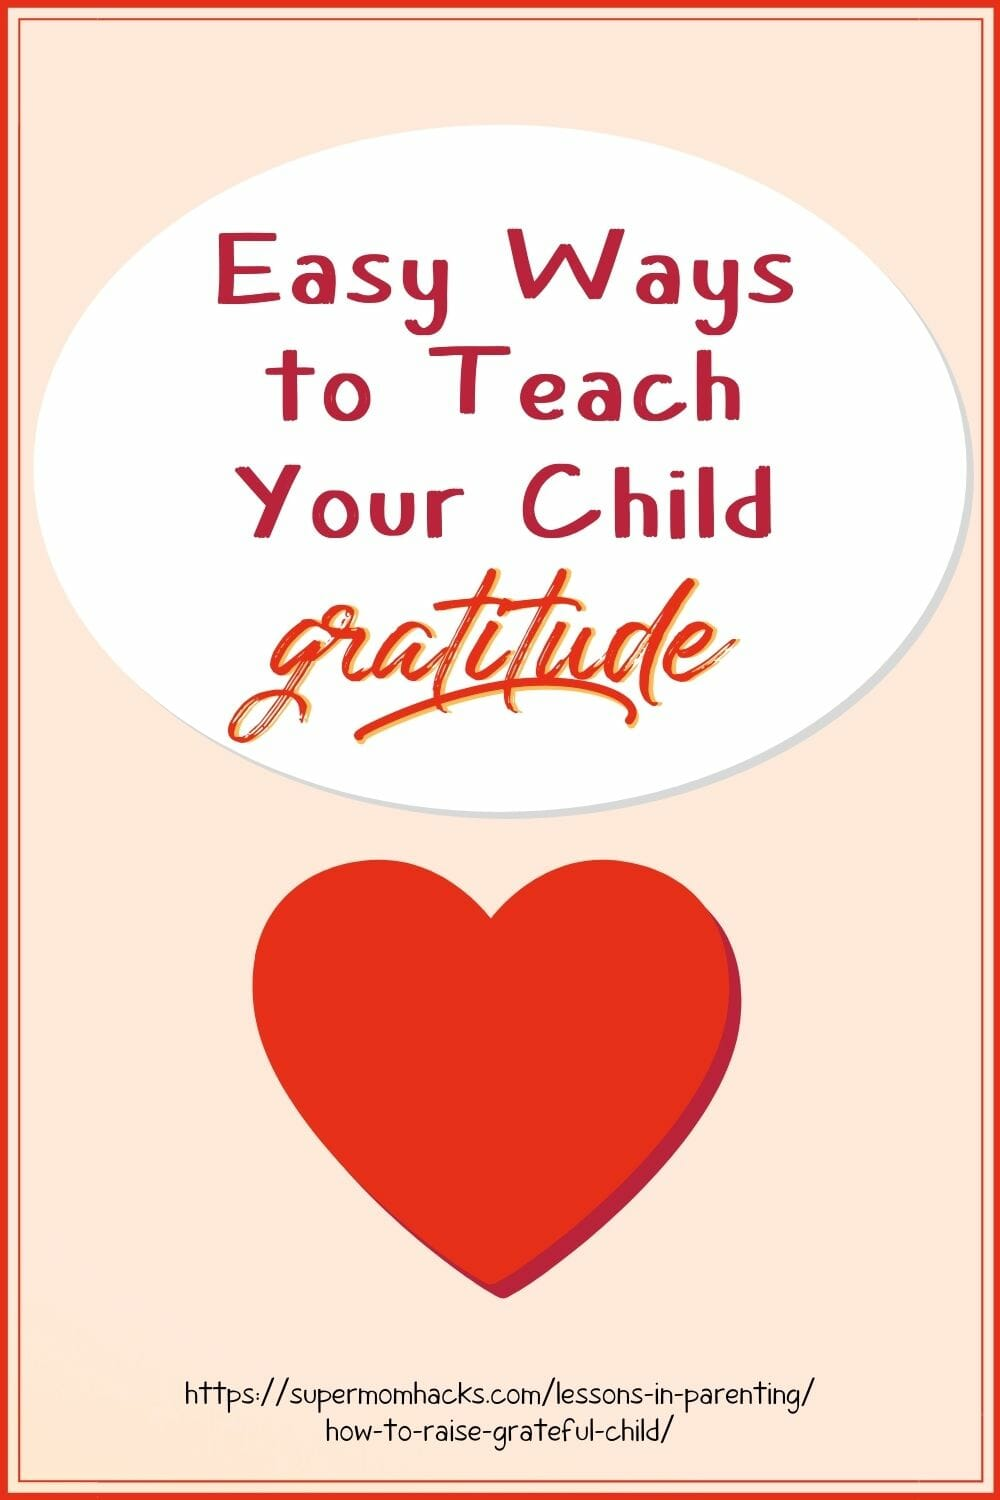 Raising a thankful child is easier than you'd guess. These tips to teach your child gratitude will help you raise a happier, healthier kid. Easy Ways to Teach Your Child Gratitude Year-Round - SuperMomHacks | teaching kids to be thankful | raising grateful kids | raising a thankful child | how to raise a thankful child | how to raise grateful child | how to raise a thankful child | how to teach your child gratitude | grateful kids | raising grateful kids in an entitled world | thankful kids